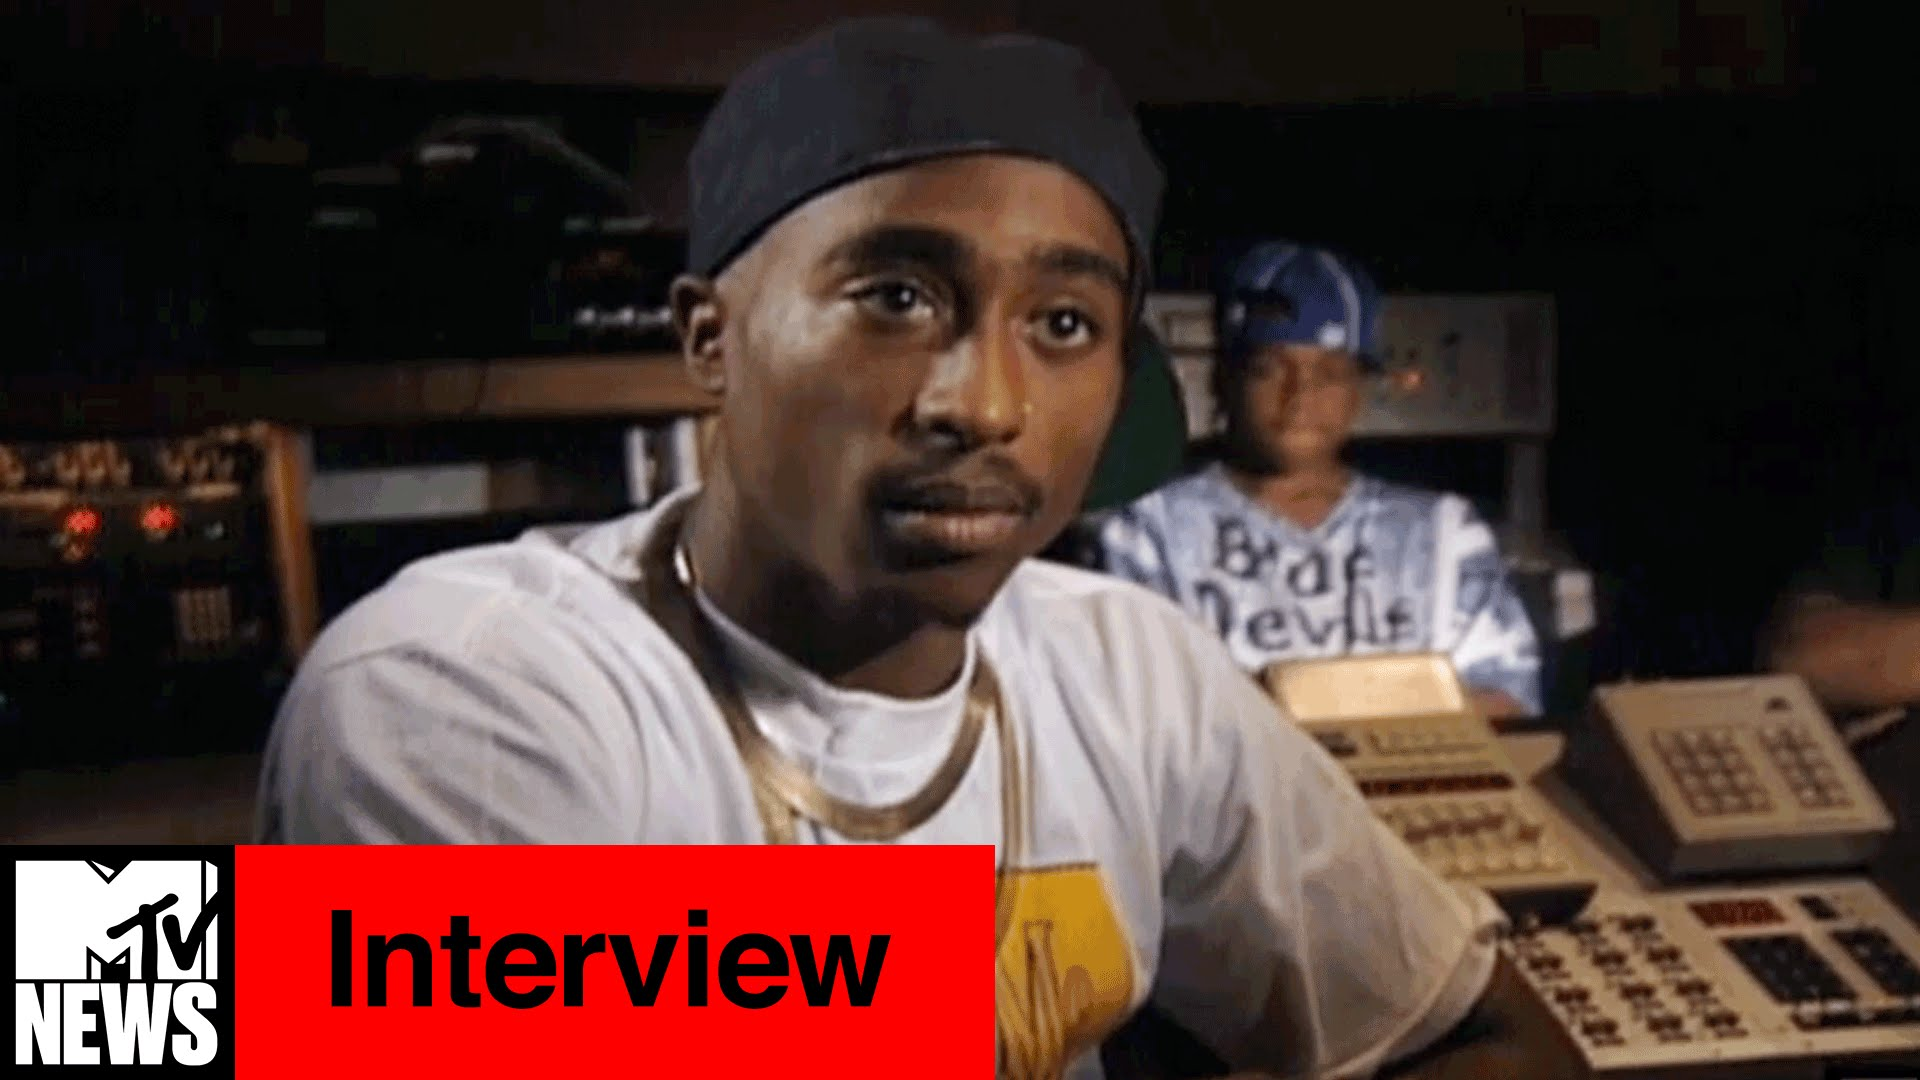 WATCH: Tupac Talks Donald Trump & Greed in America in Rare 1992 Interview